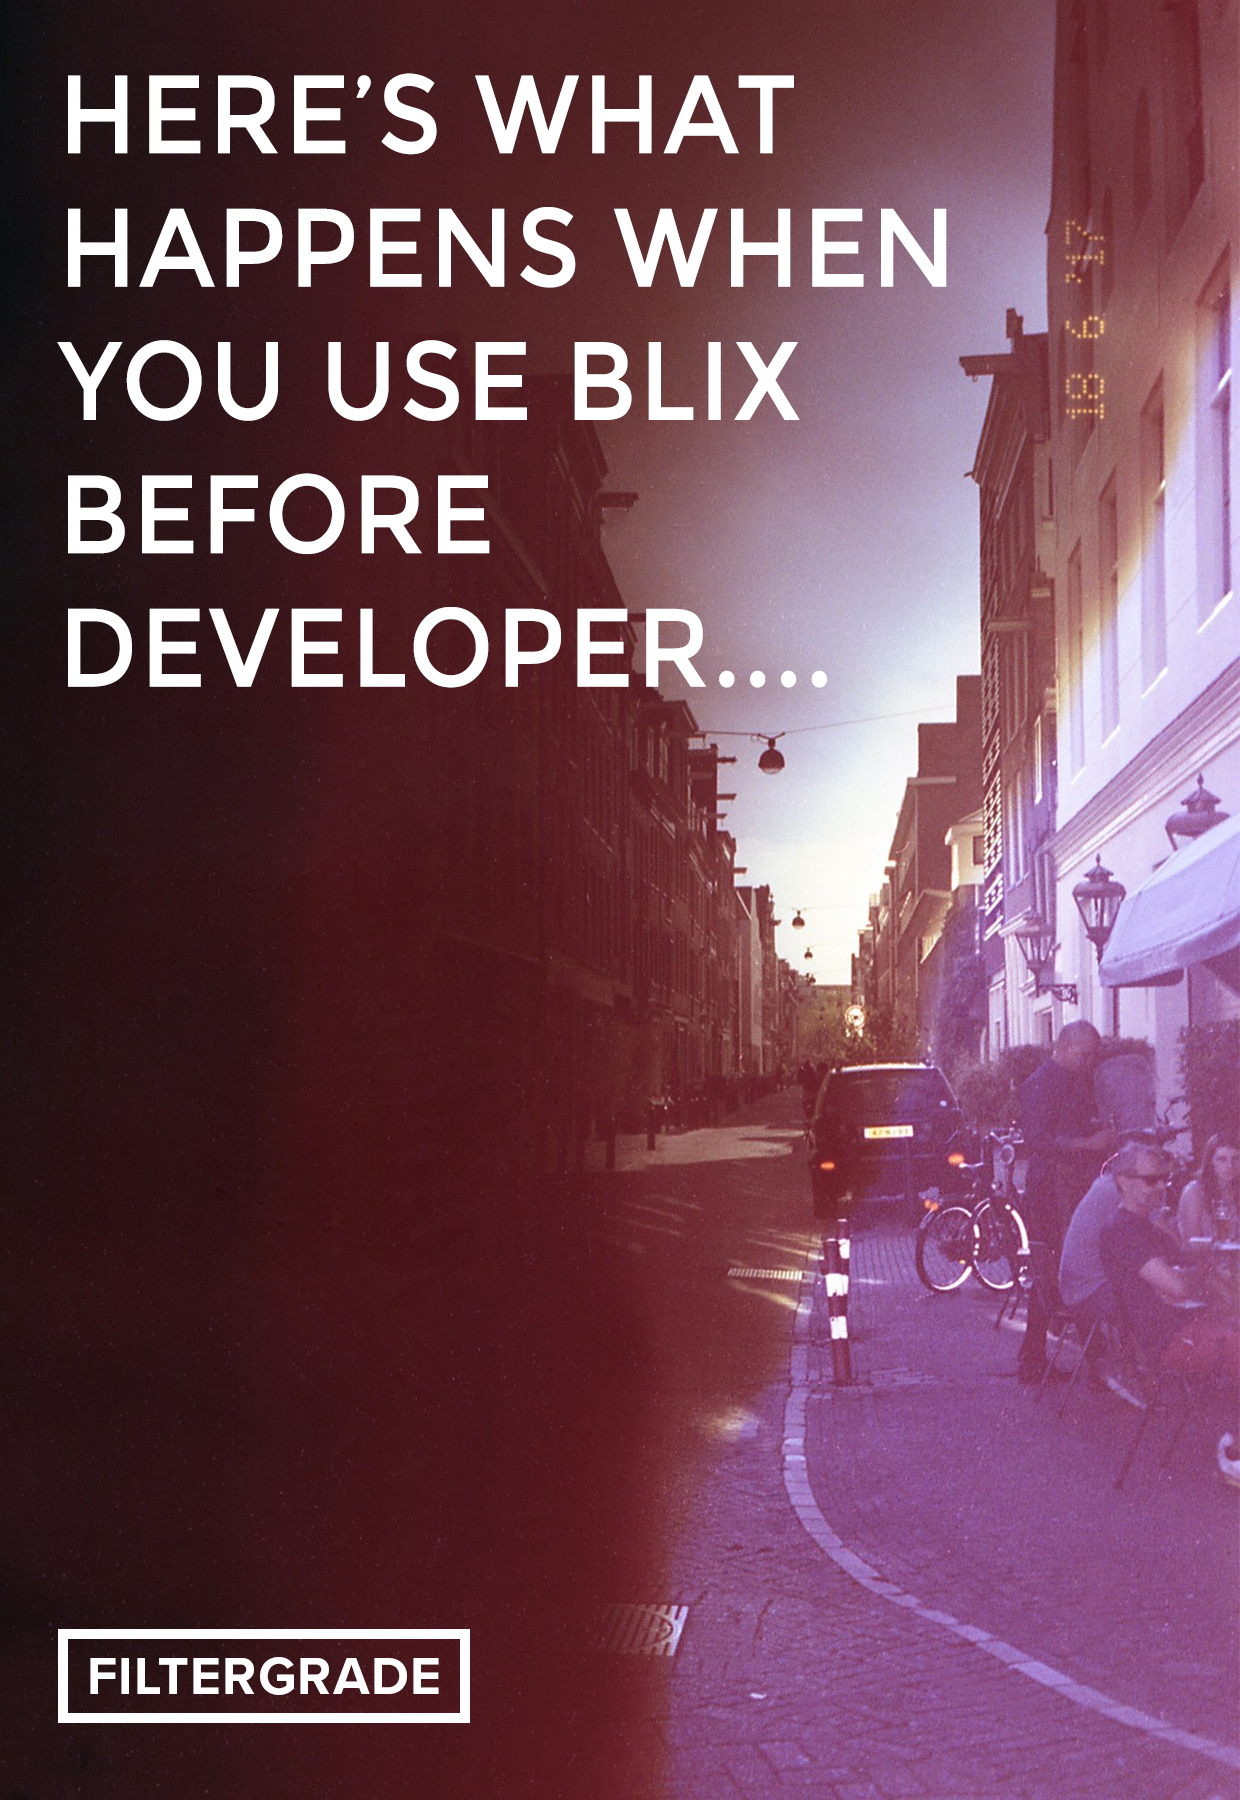 1 Here's What Happens When You Use Blix Before Developer - FilterGrade Blog